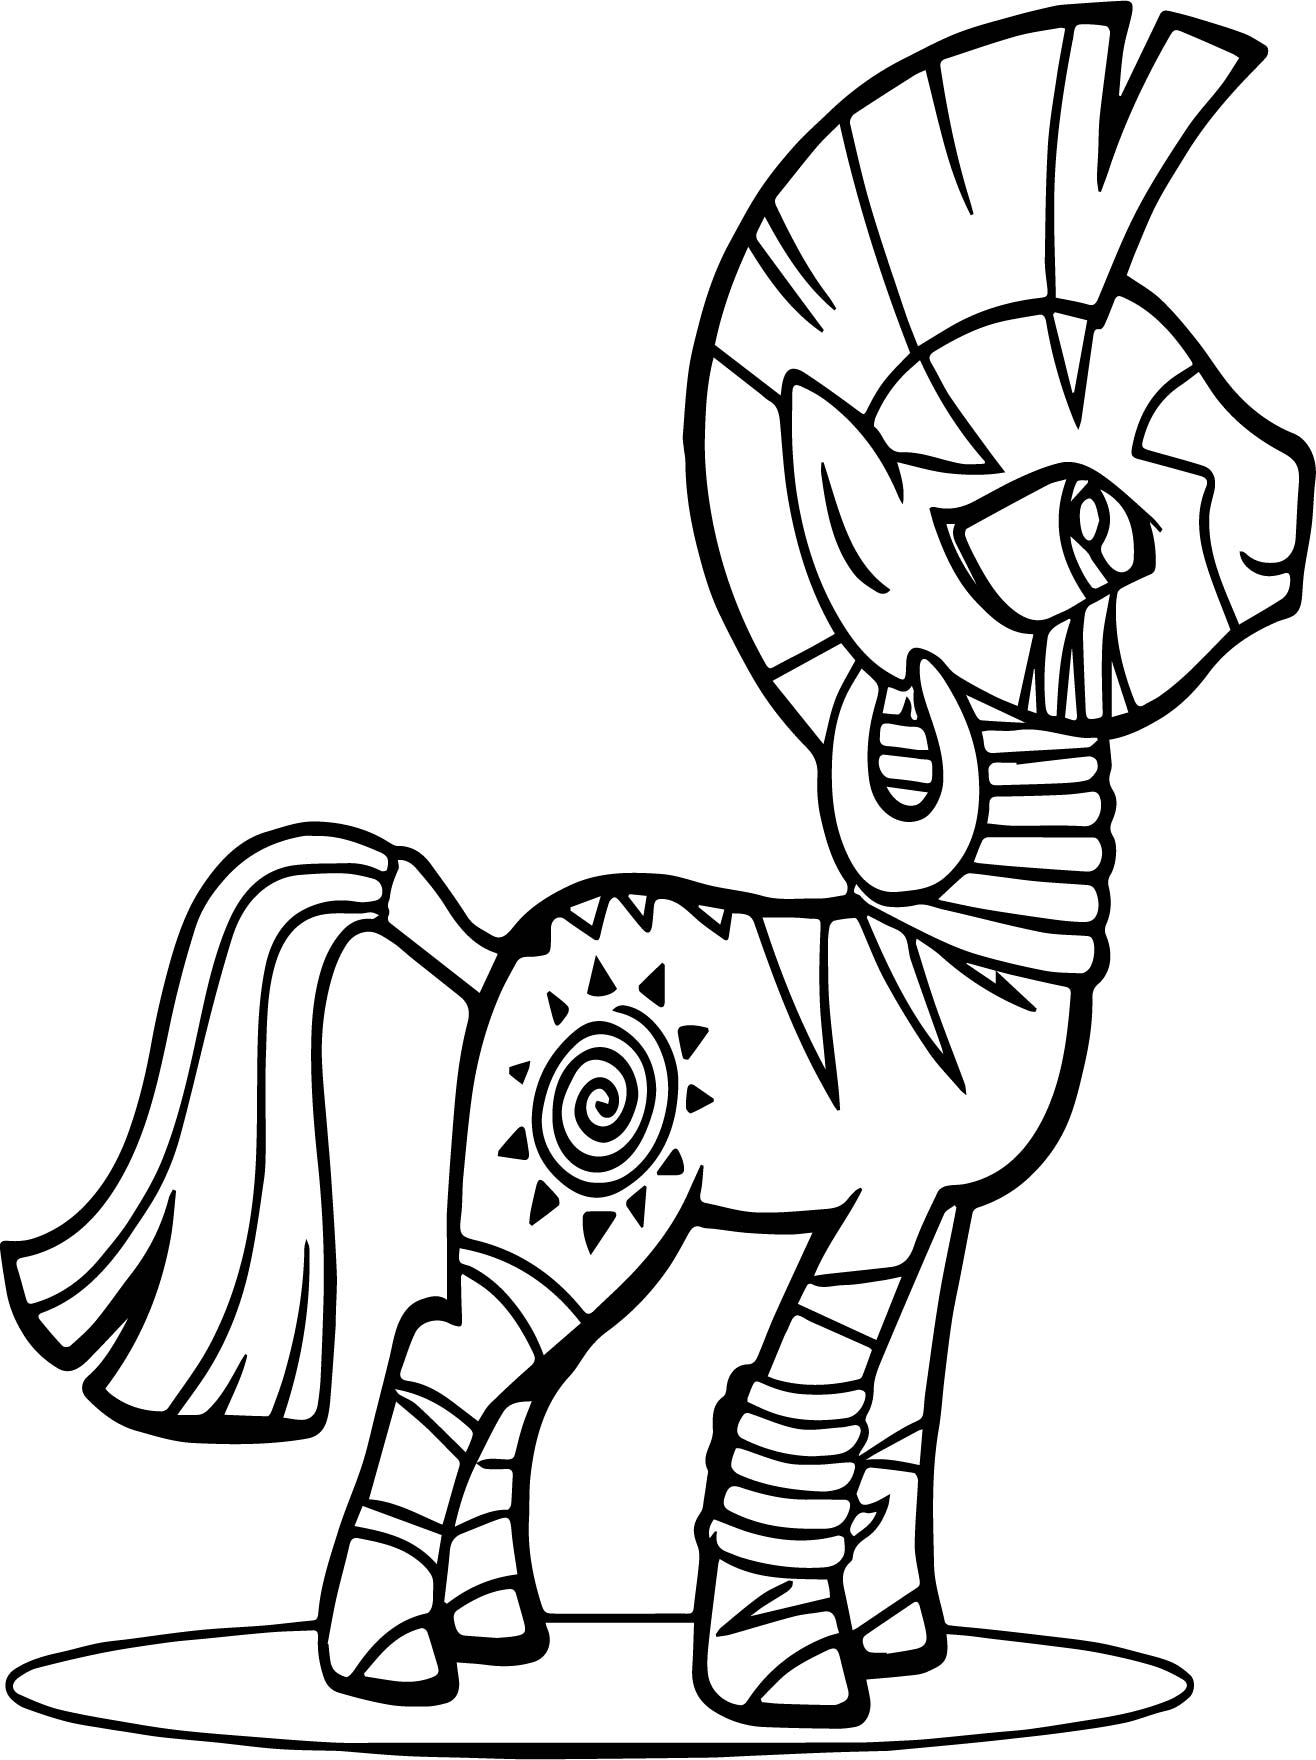 Zecora Re Coloring Page